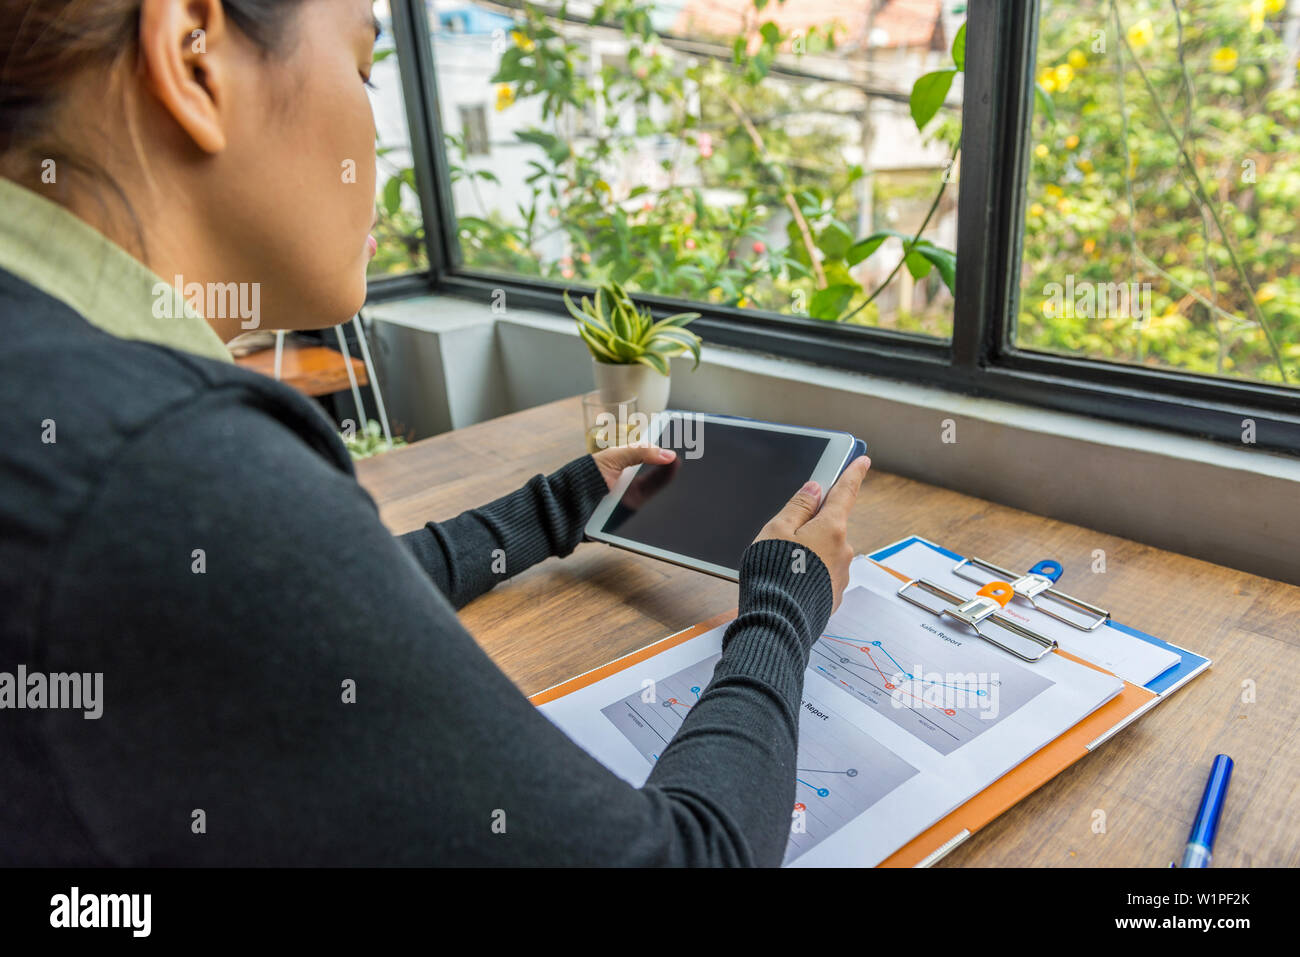 Woman using digital tablet at workplace next to window - Stock Image